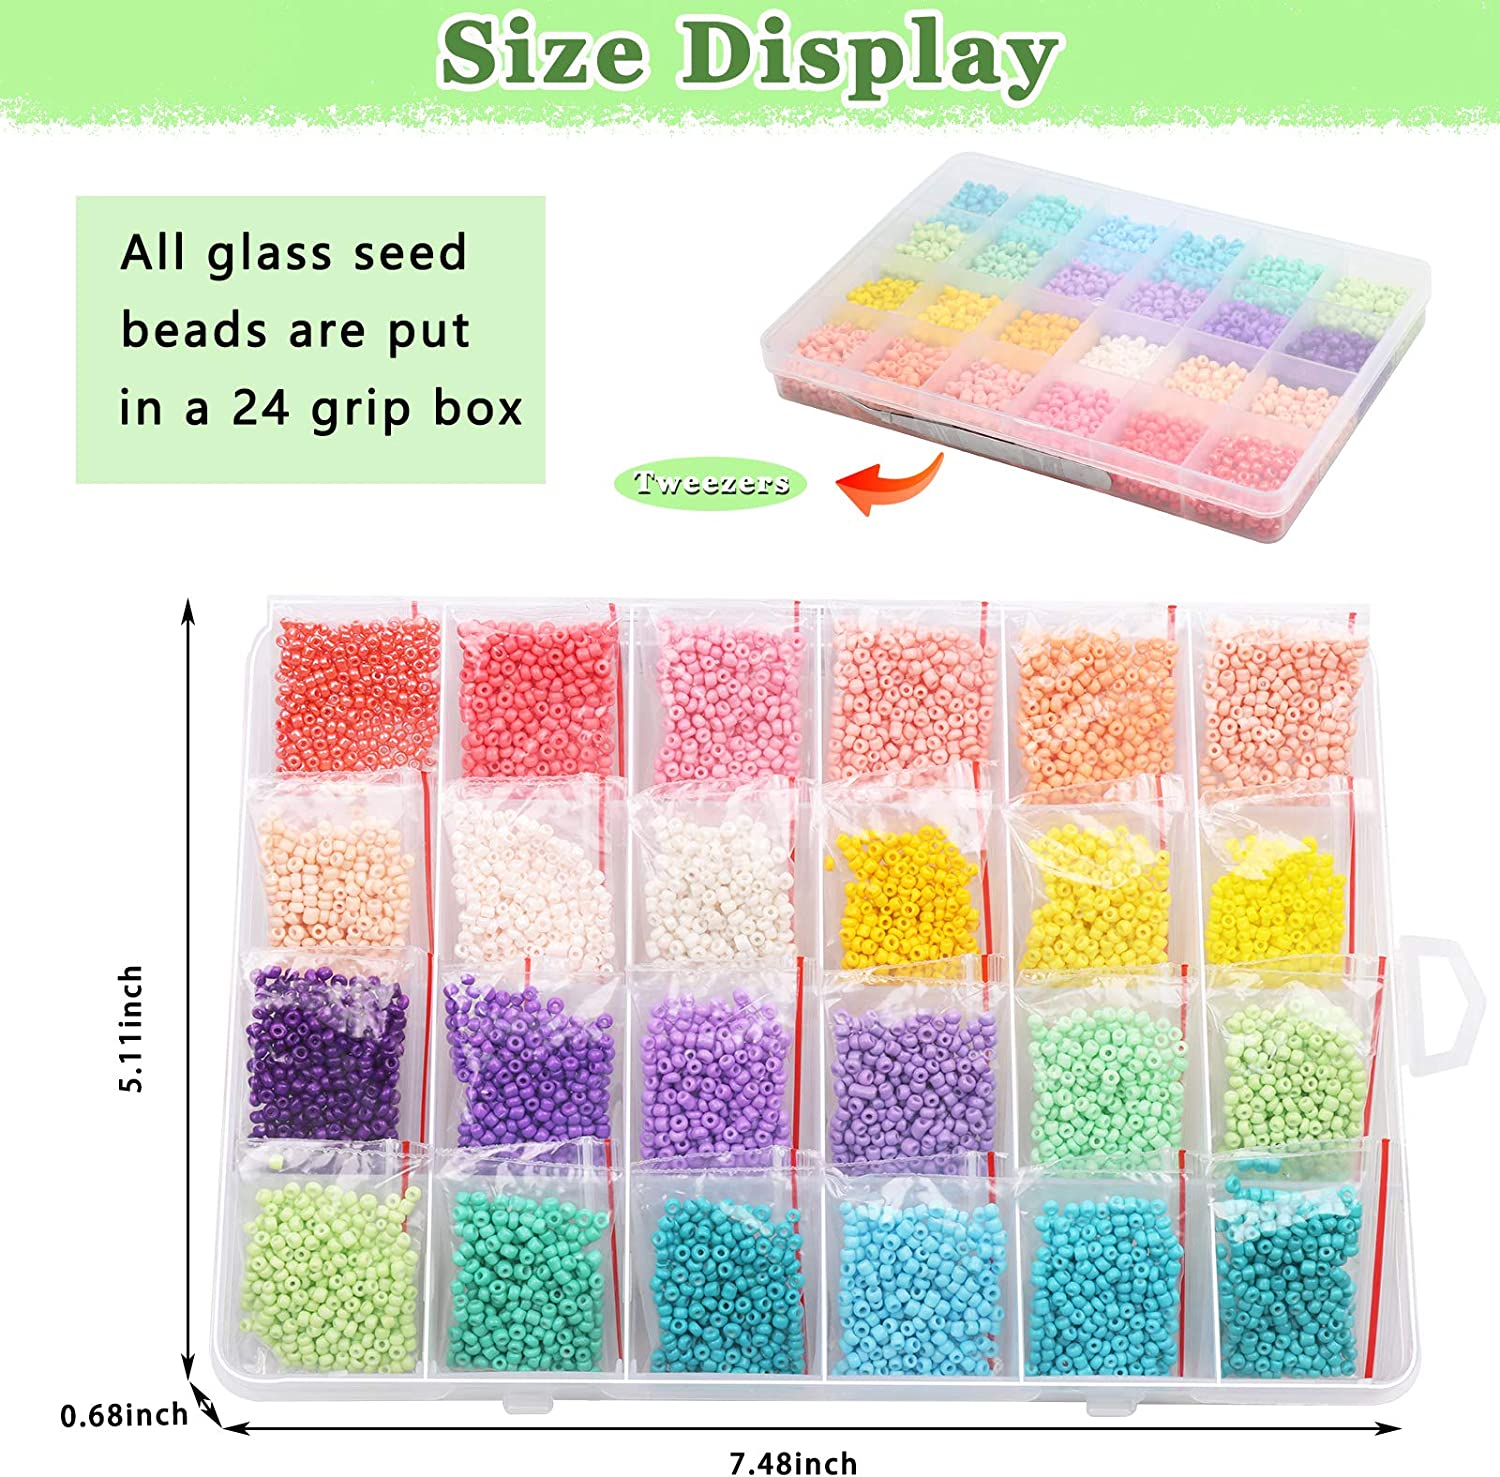 7200Pcs 12//0 Glass Pony Seed Beads Kit Gacuyi 24Colors 2mm Small Craft Beads for DIY Bracelet Necklace Crafting Jewelry Making Supply with 2Pcs 0.5mm Elastic String and Tweezers 300Pcs Per Color